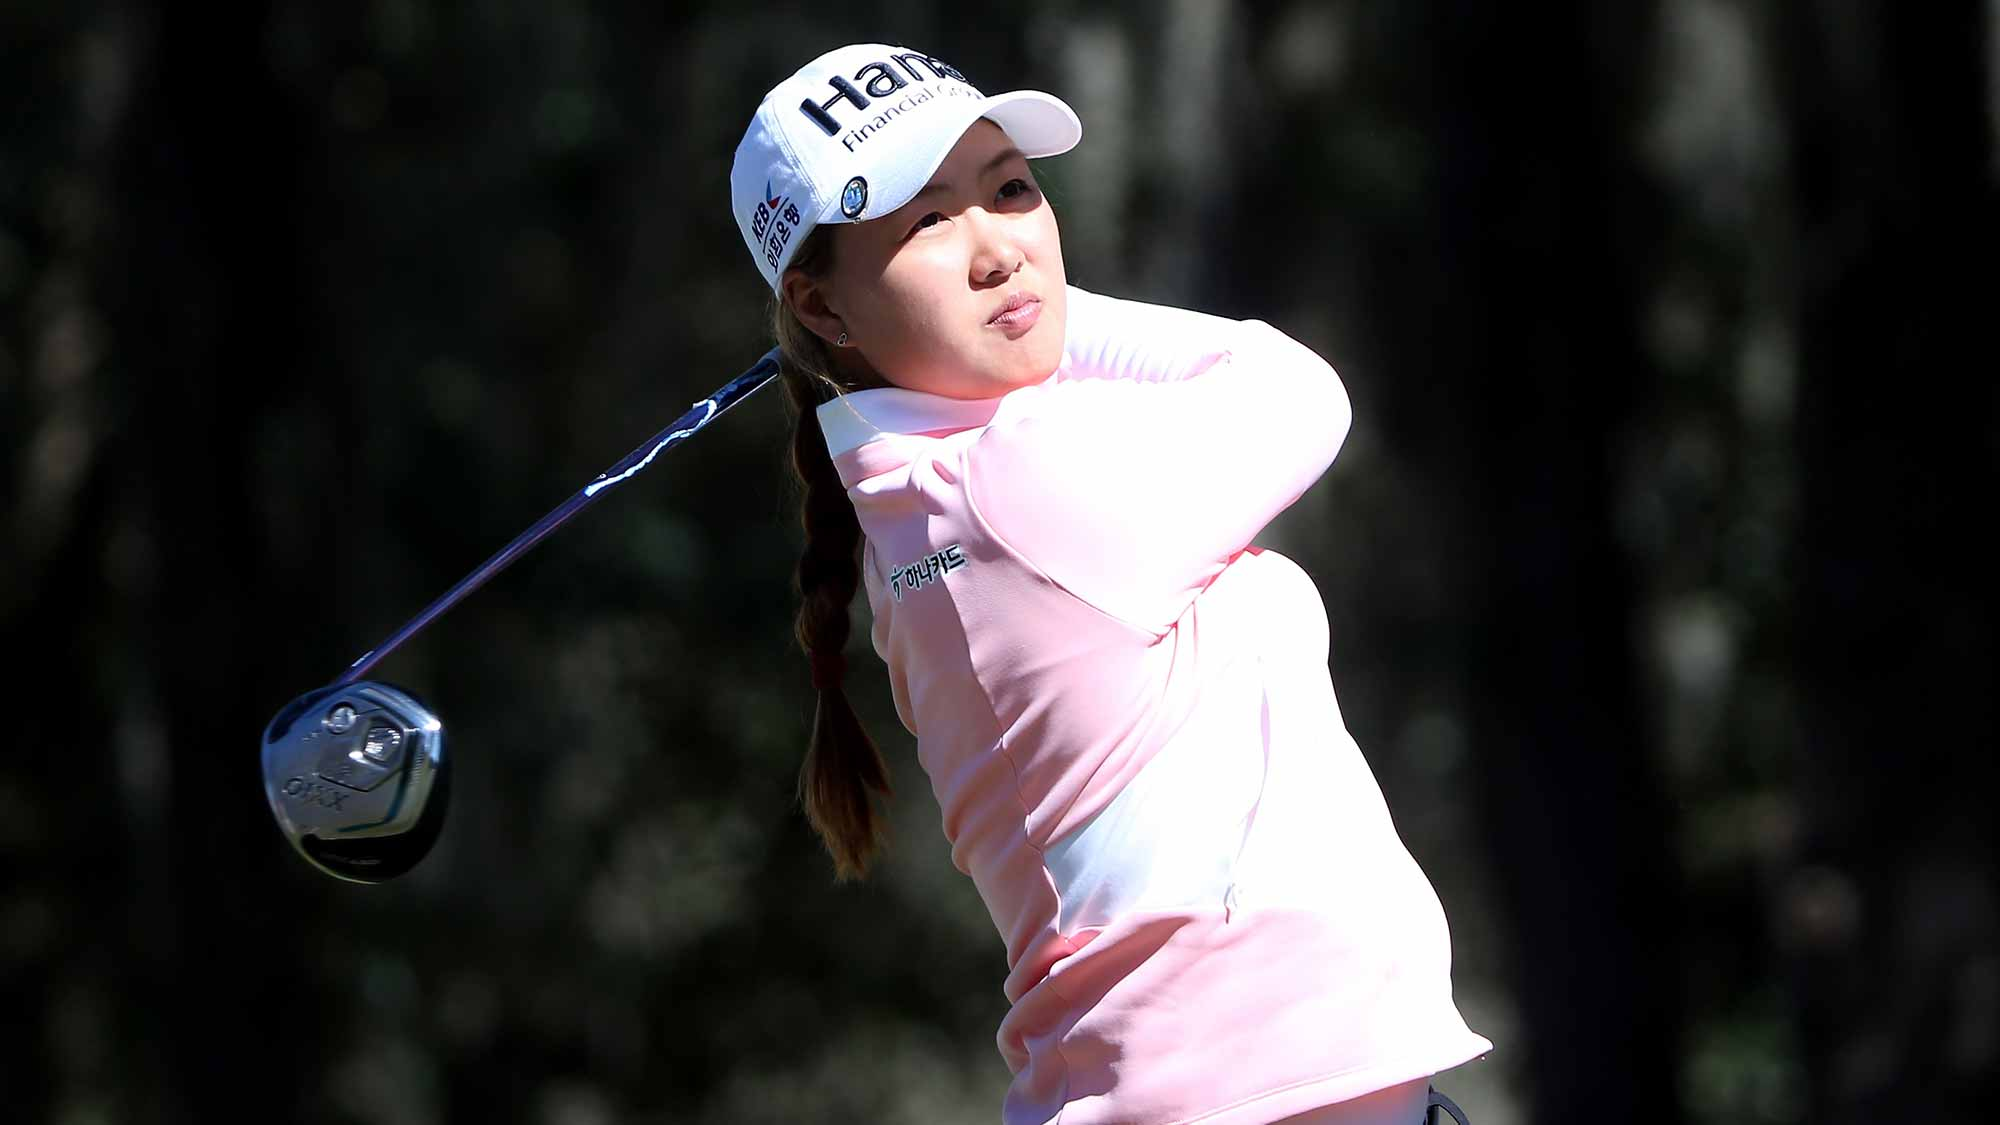 Minjee Lee of Australia plays a shot on the 18th hole during the continuation of the second round of the Coates Golf Championship Presented By R+L Carriers at Golden Ocala Golf Club